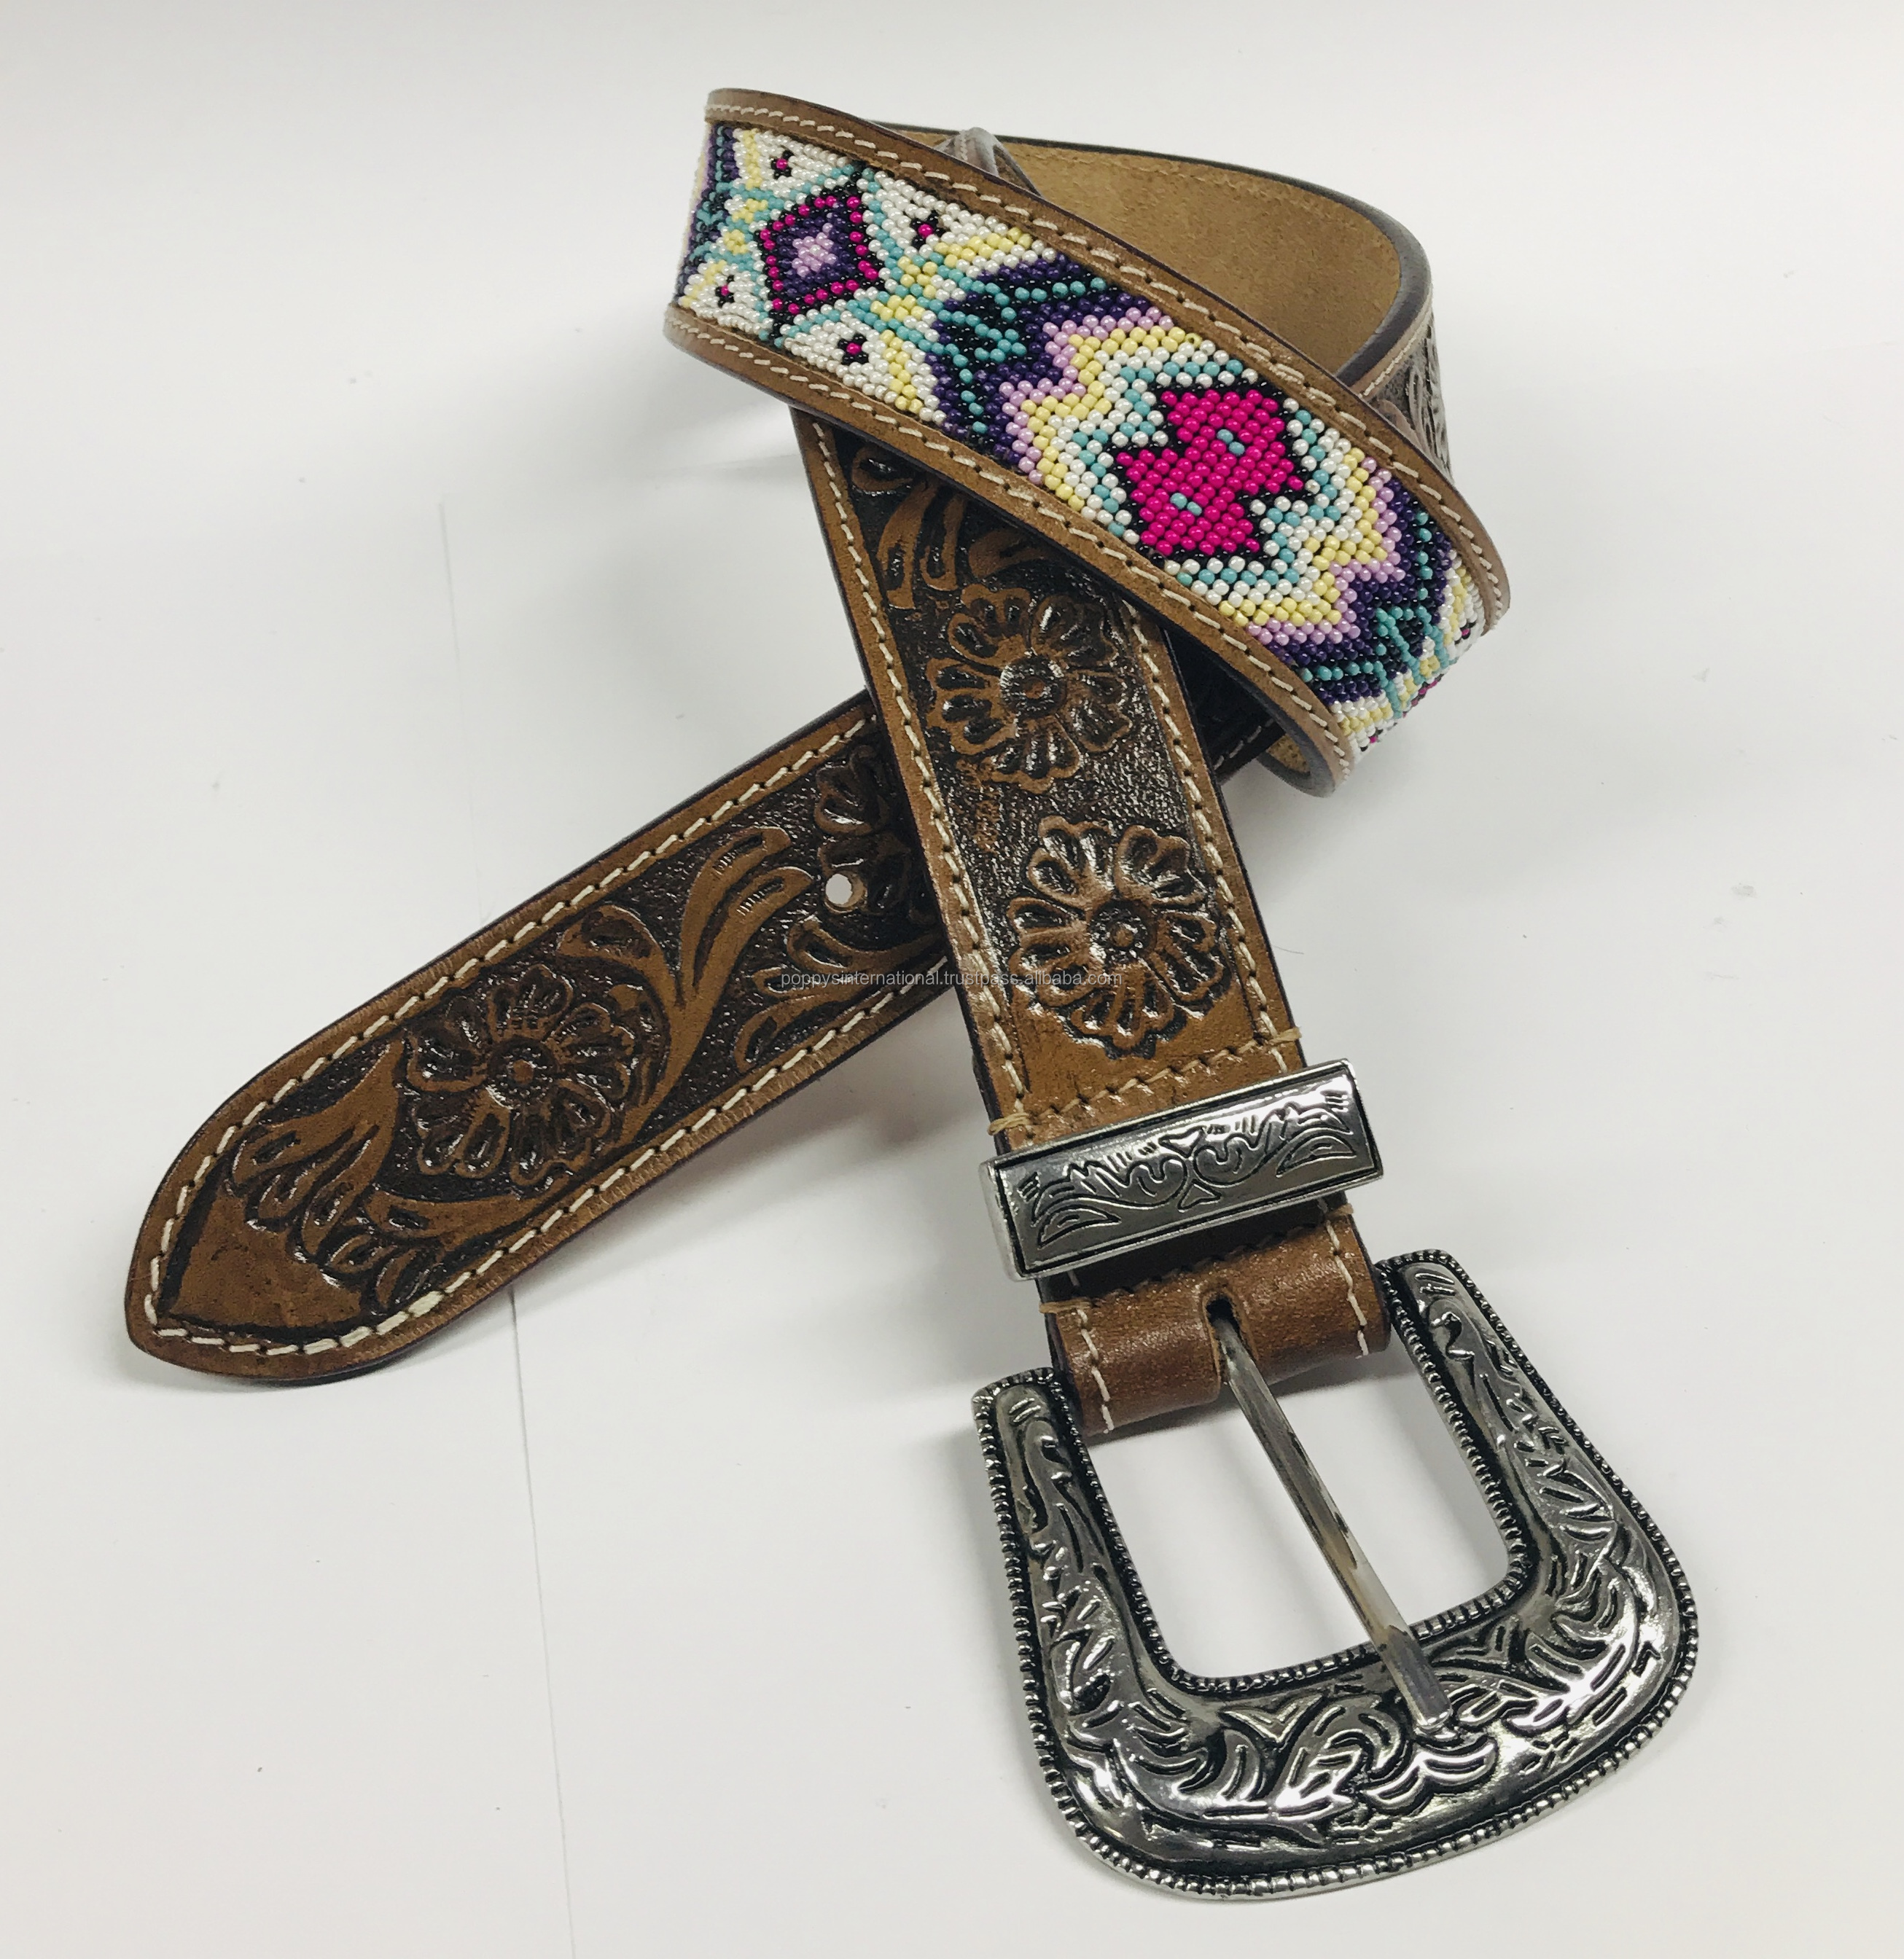 CROSS DESIGN HAND MADE COLOURED BEADED LEATHER BELT WITH HAND CARVED TOOLED DESIGN.